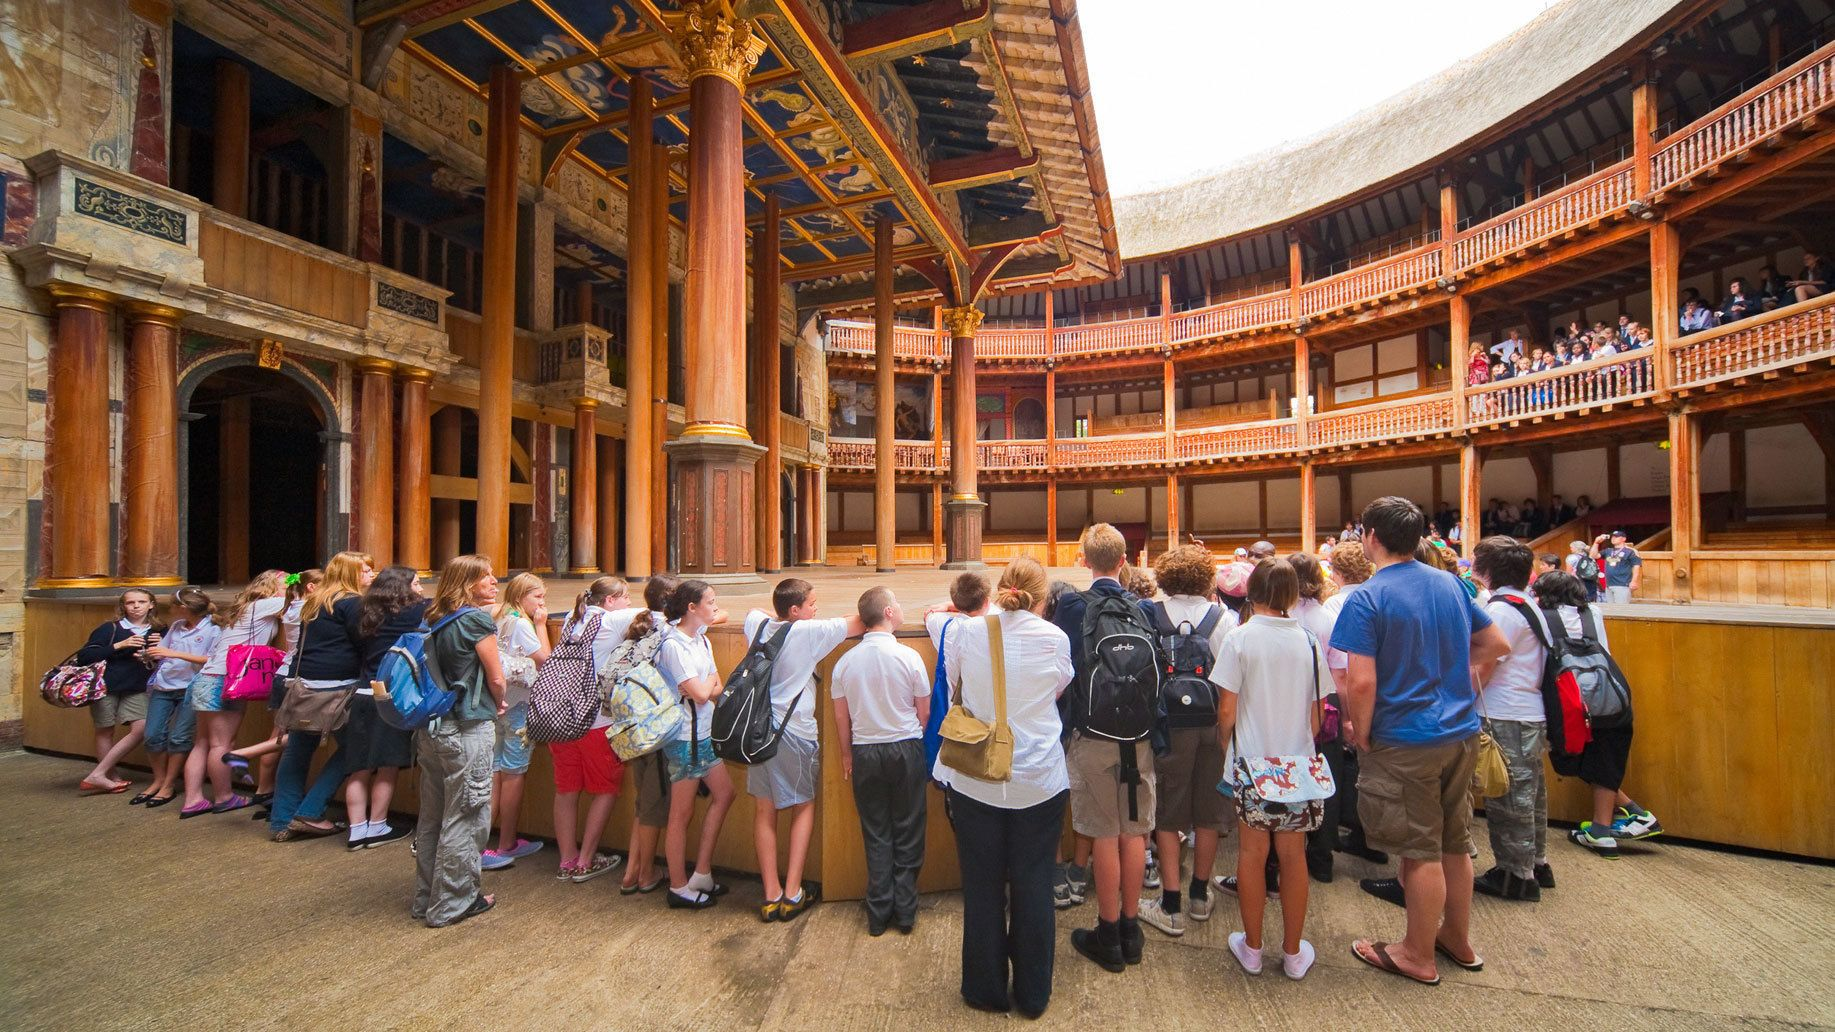 large audience gathered to watch Shakespeare in London